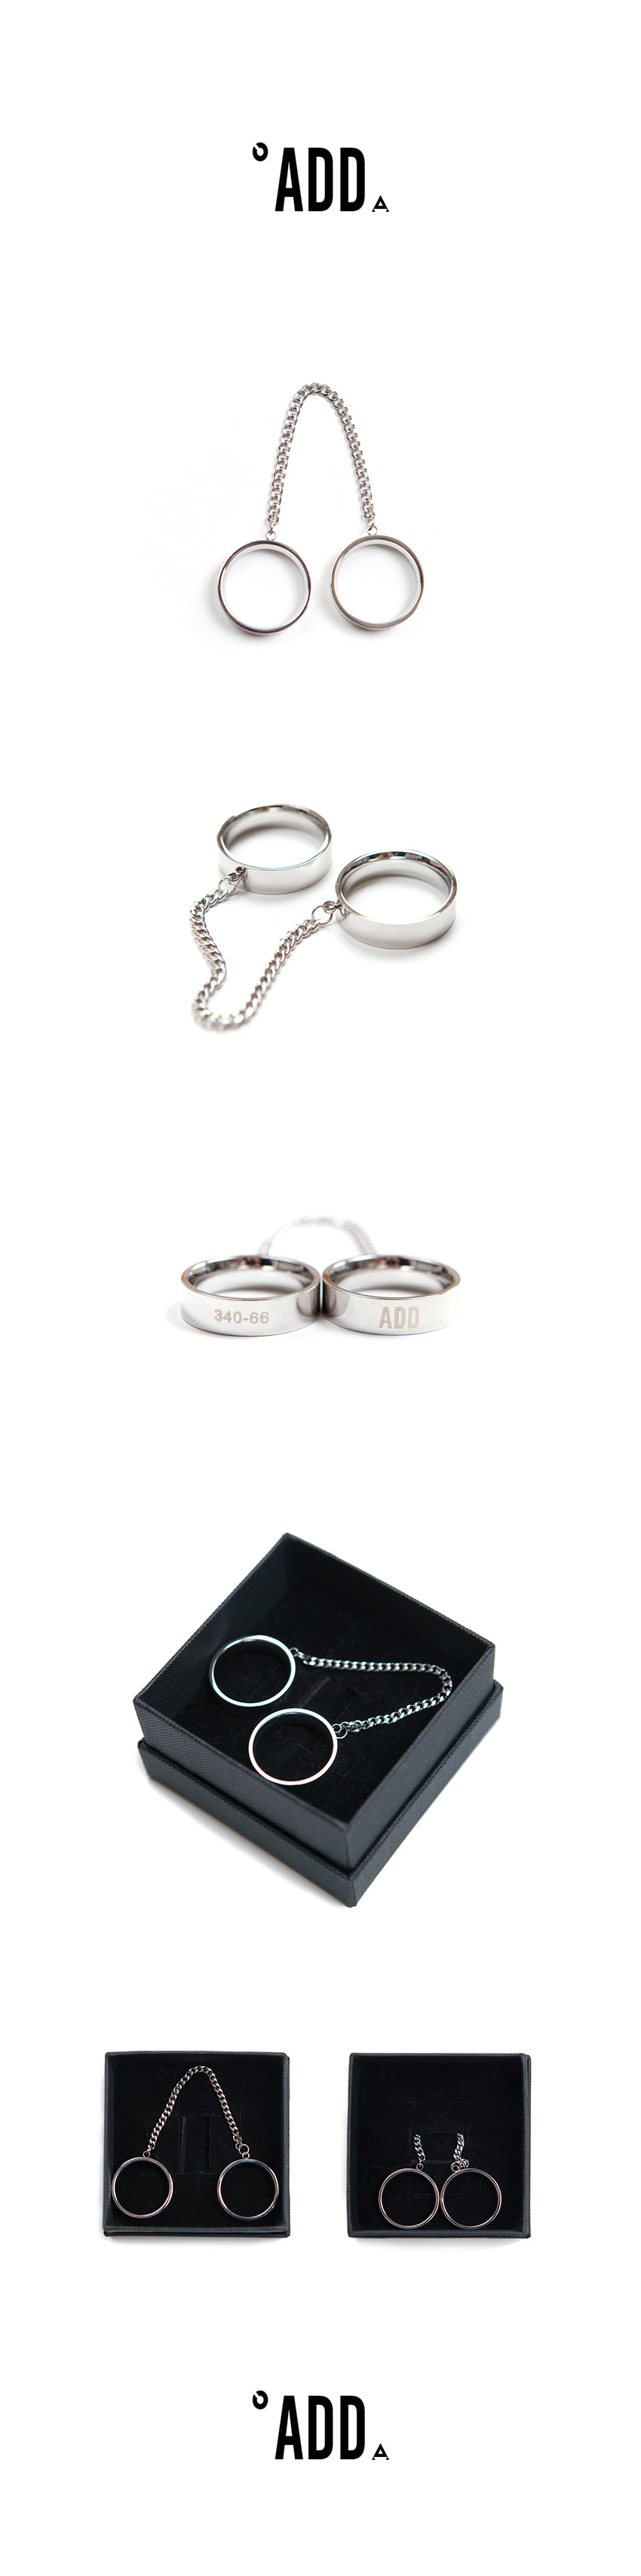 에드(ADD) DOUBLE LOGO RING